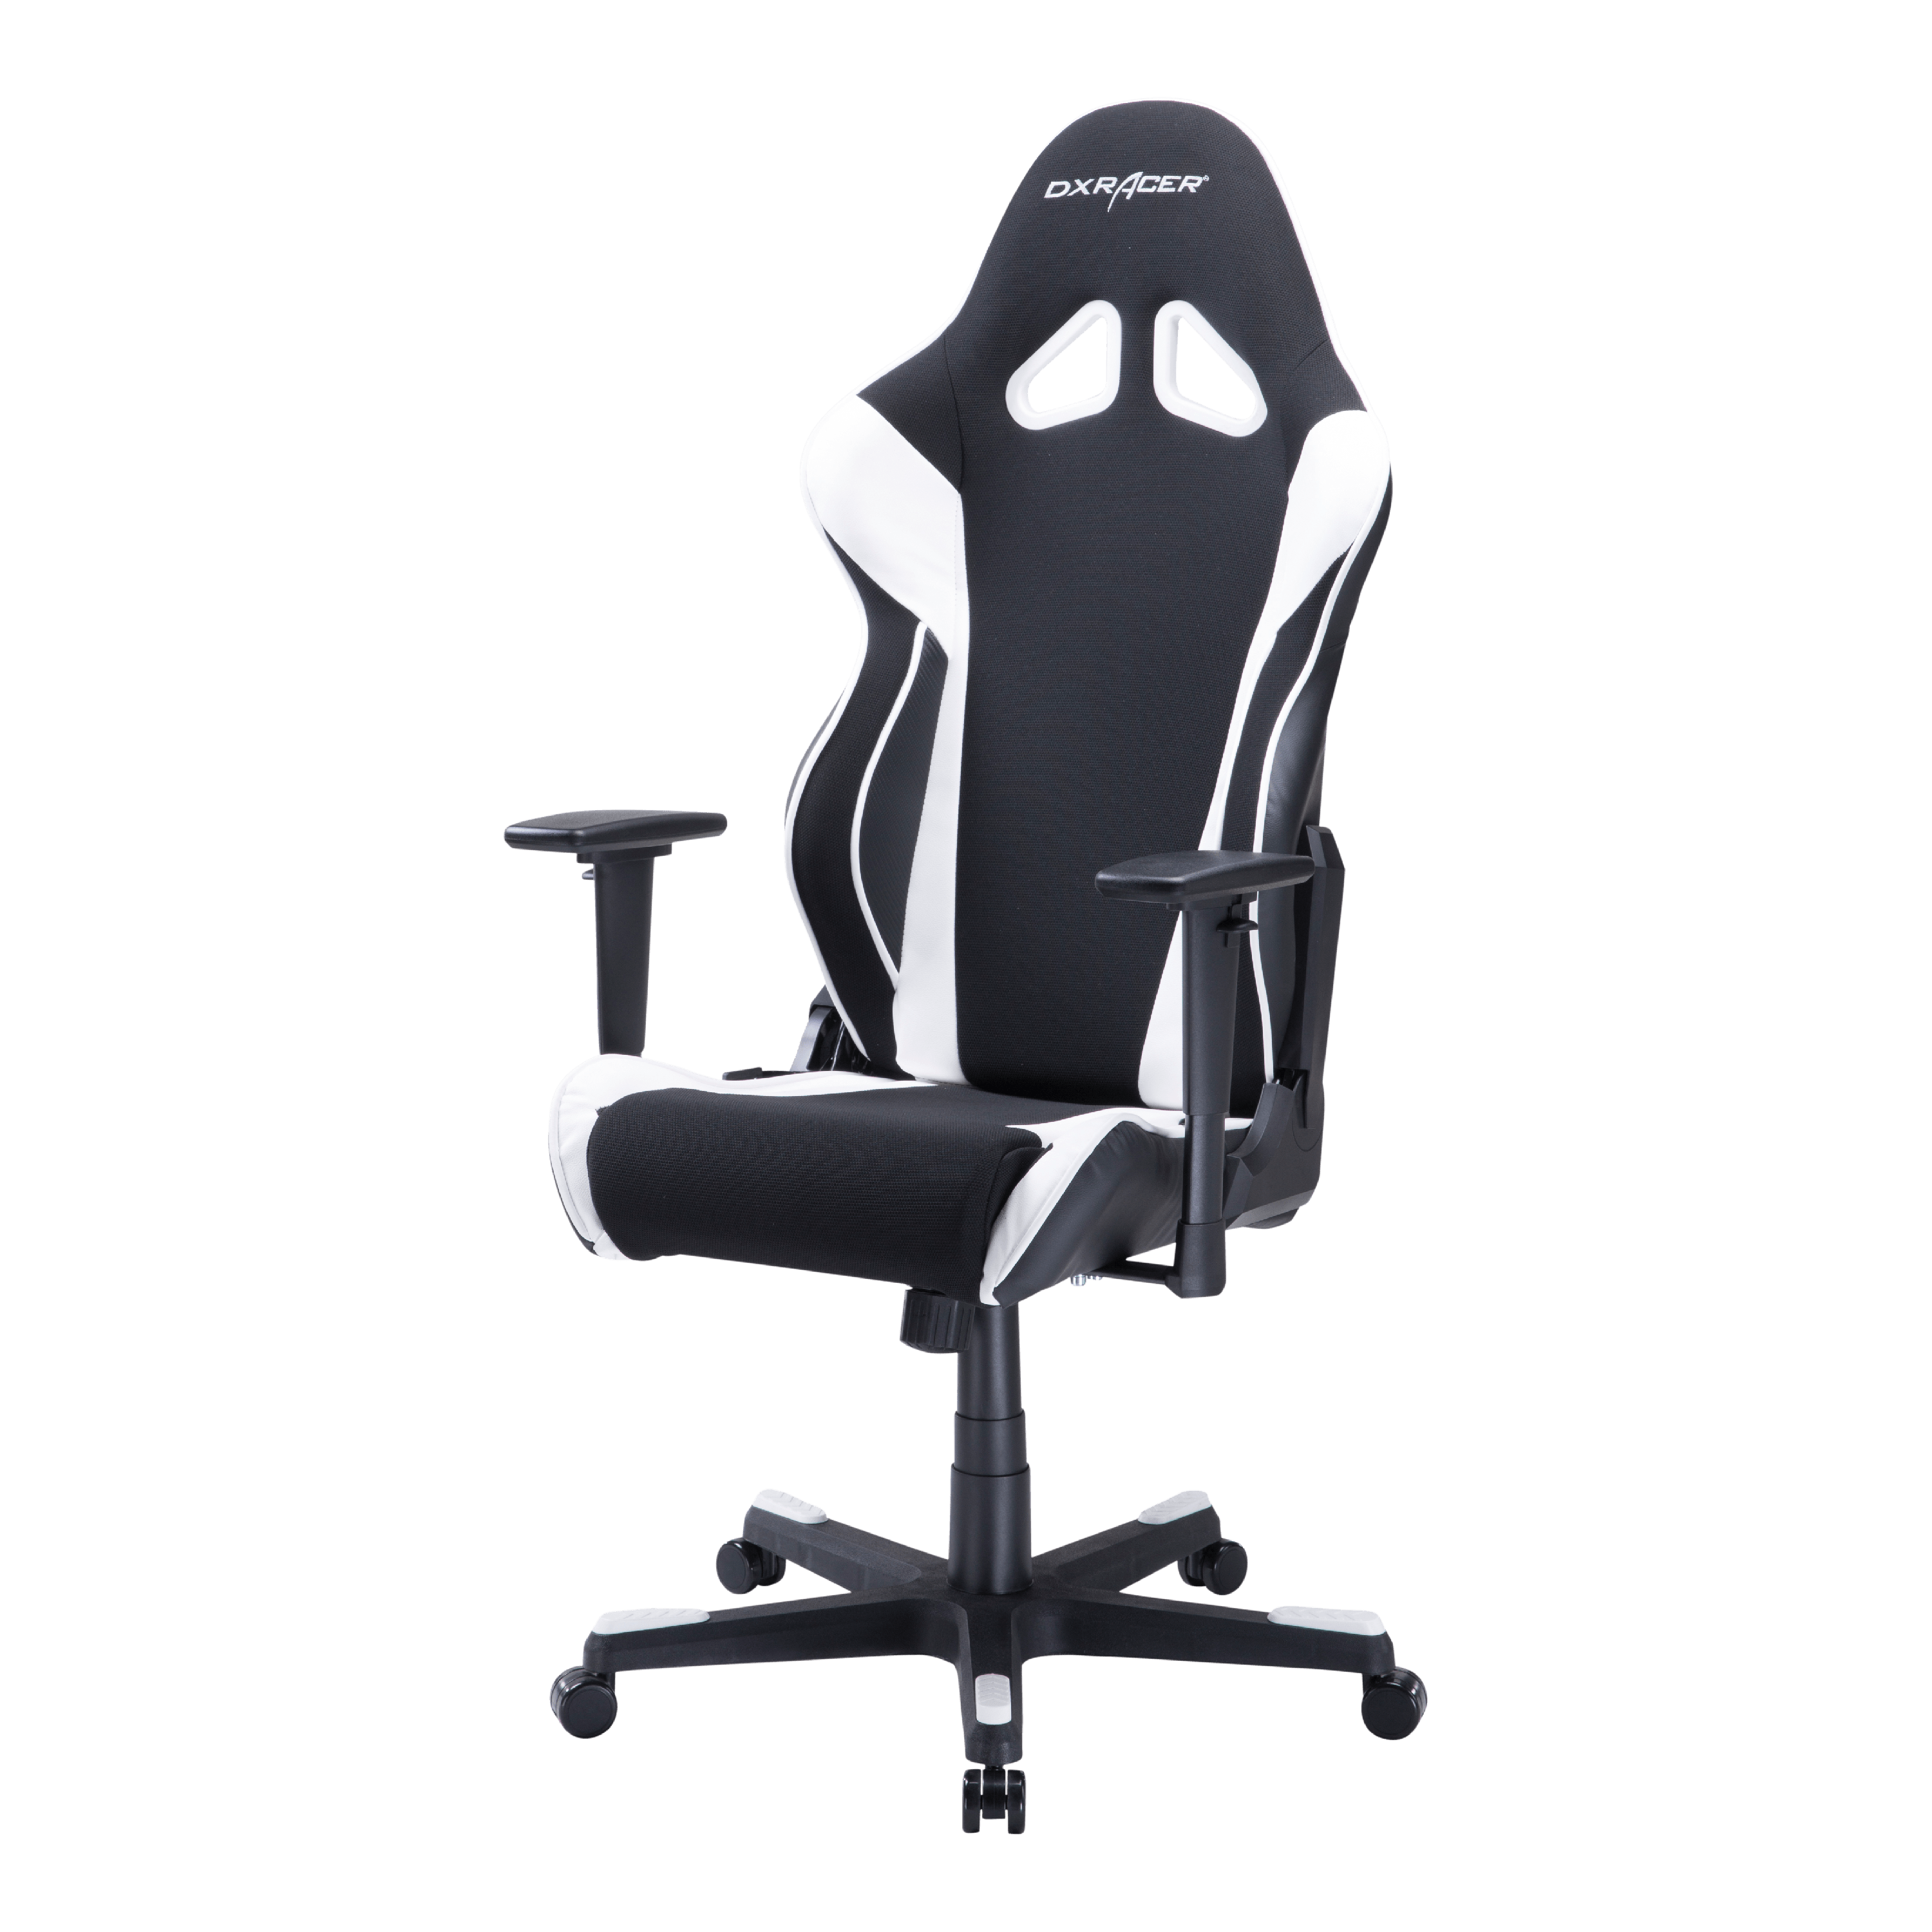 DXRacer Racing Series Black and White - OH/RW106/NW - Ergonomic, High Back, Reclining, Gaming  E-Sports  Office Chair